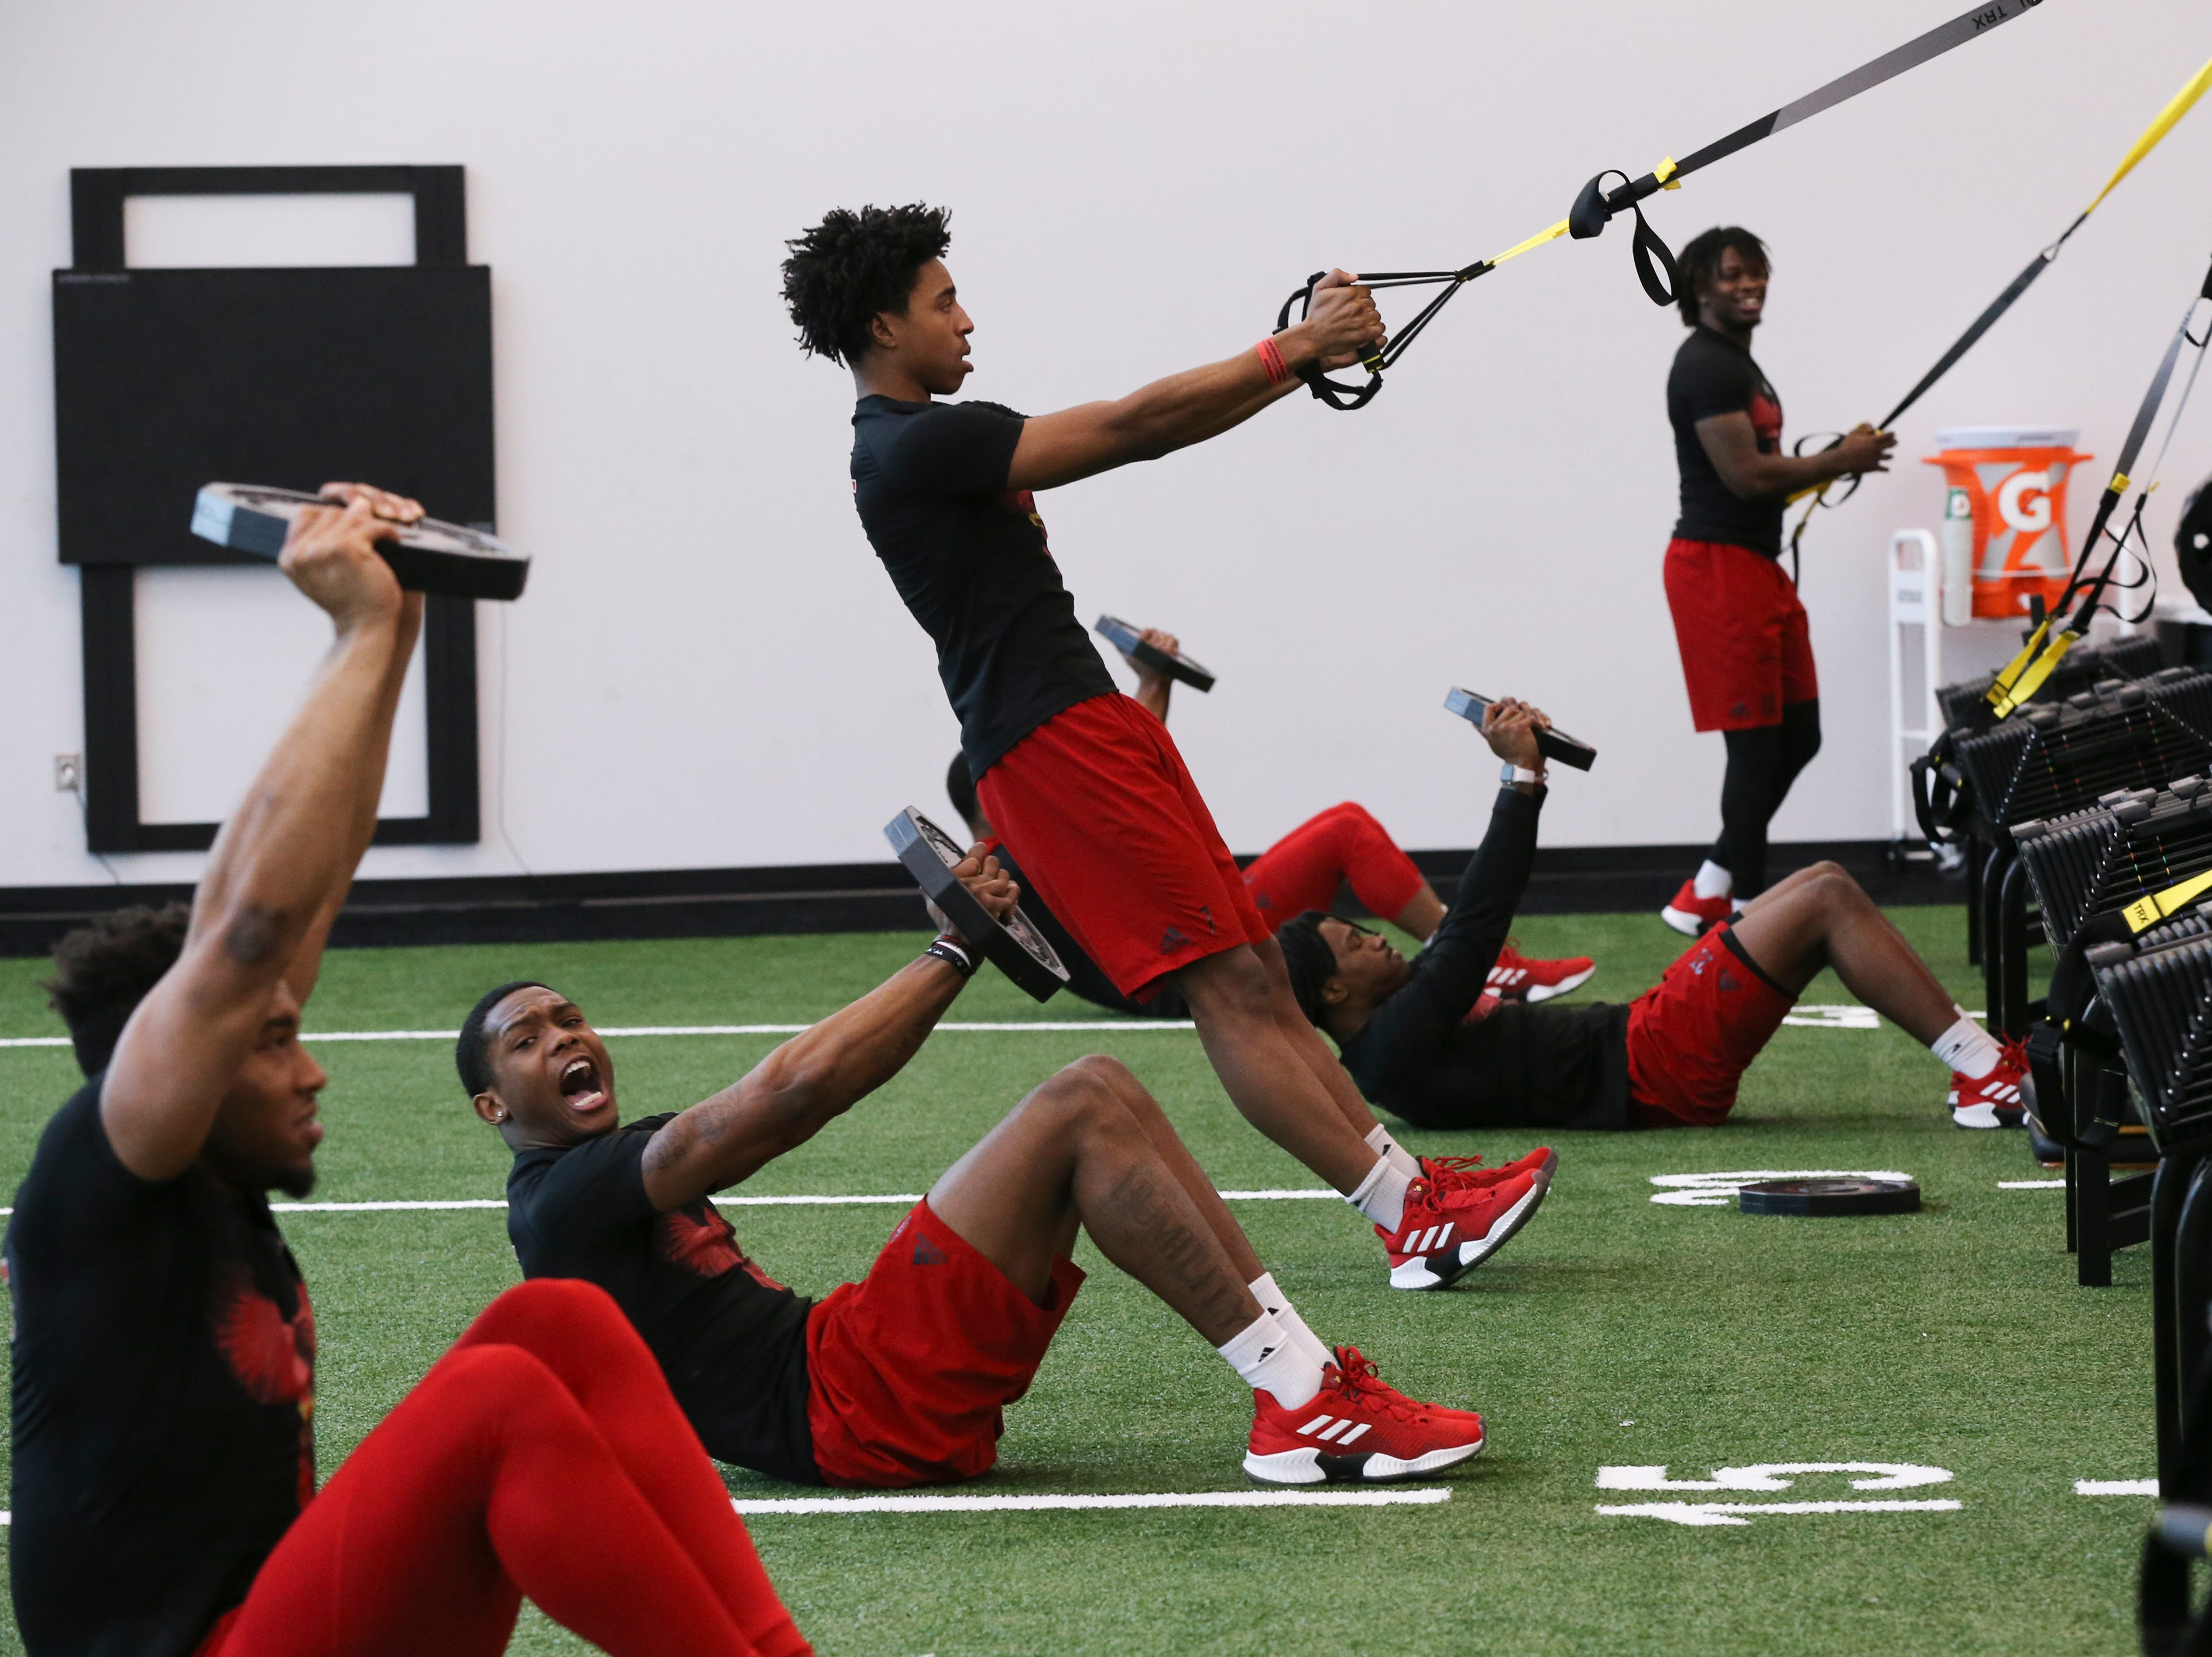 U of L wide receiver Dez Fitzpatrick, center, works out during strength and conditioning at the Schnellenberger Complex.